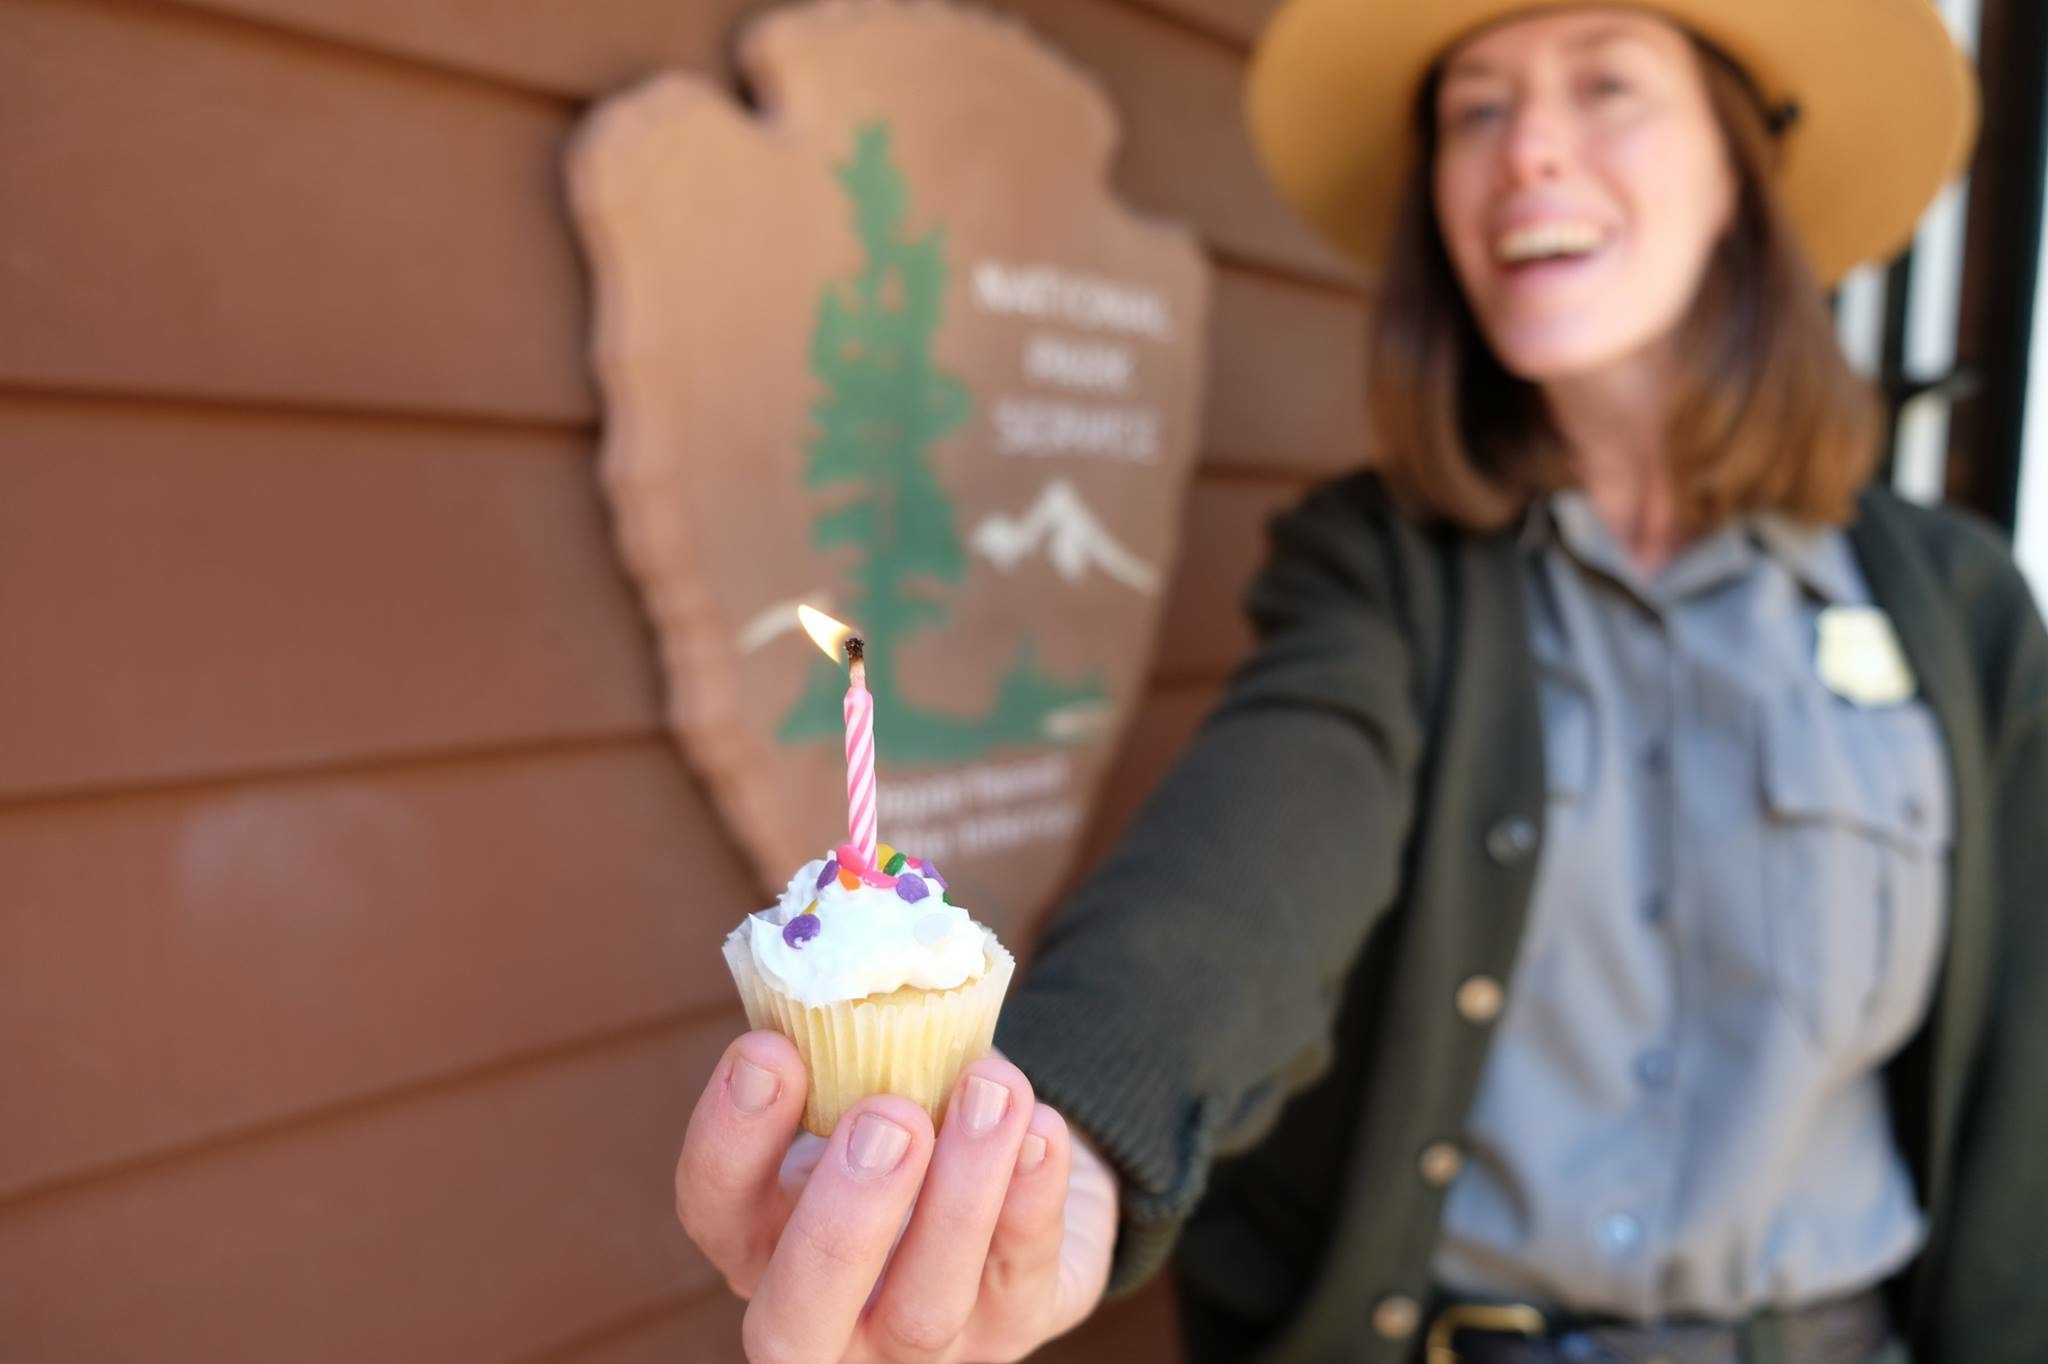 park ranger with cupcake and birthday candle